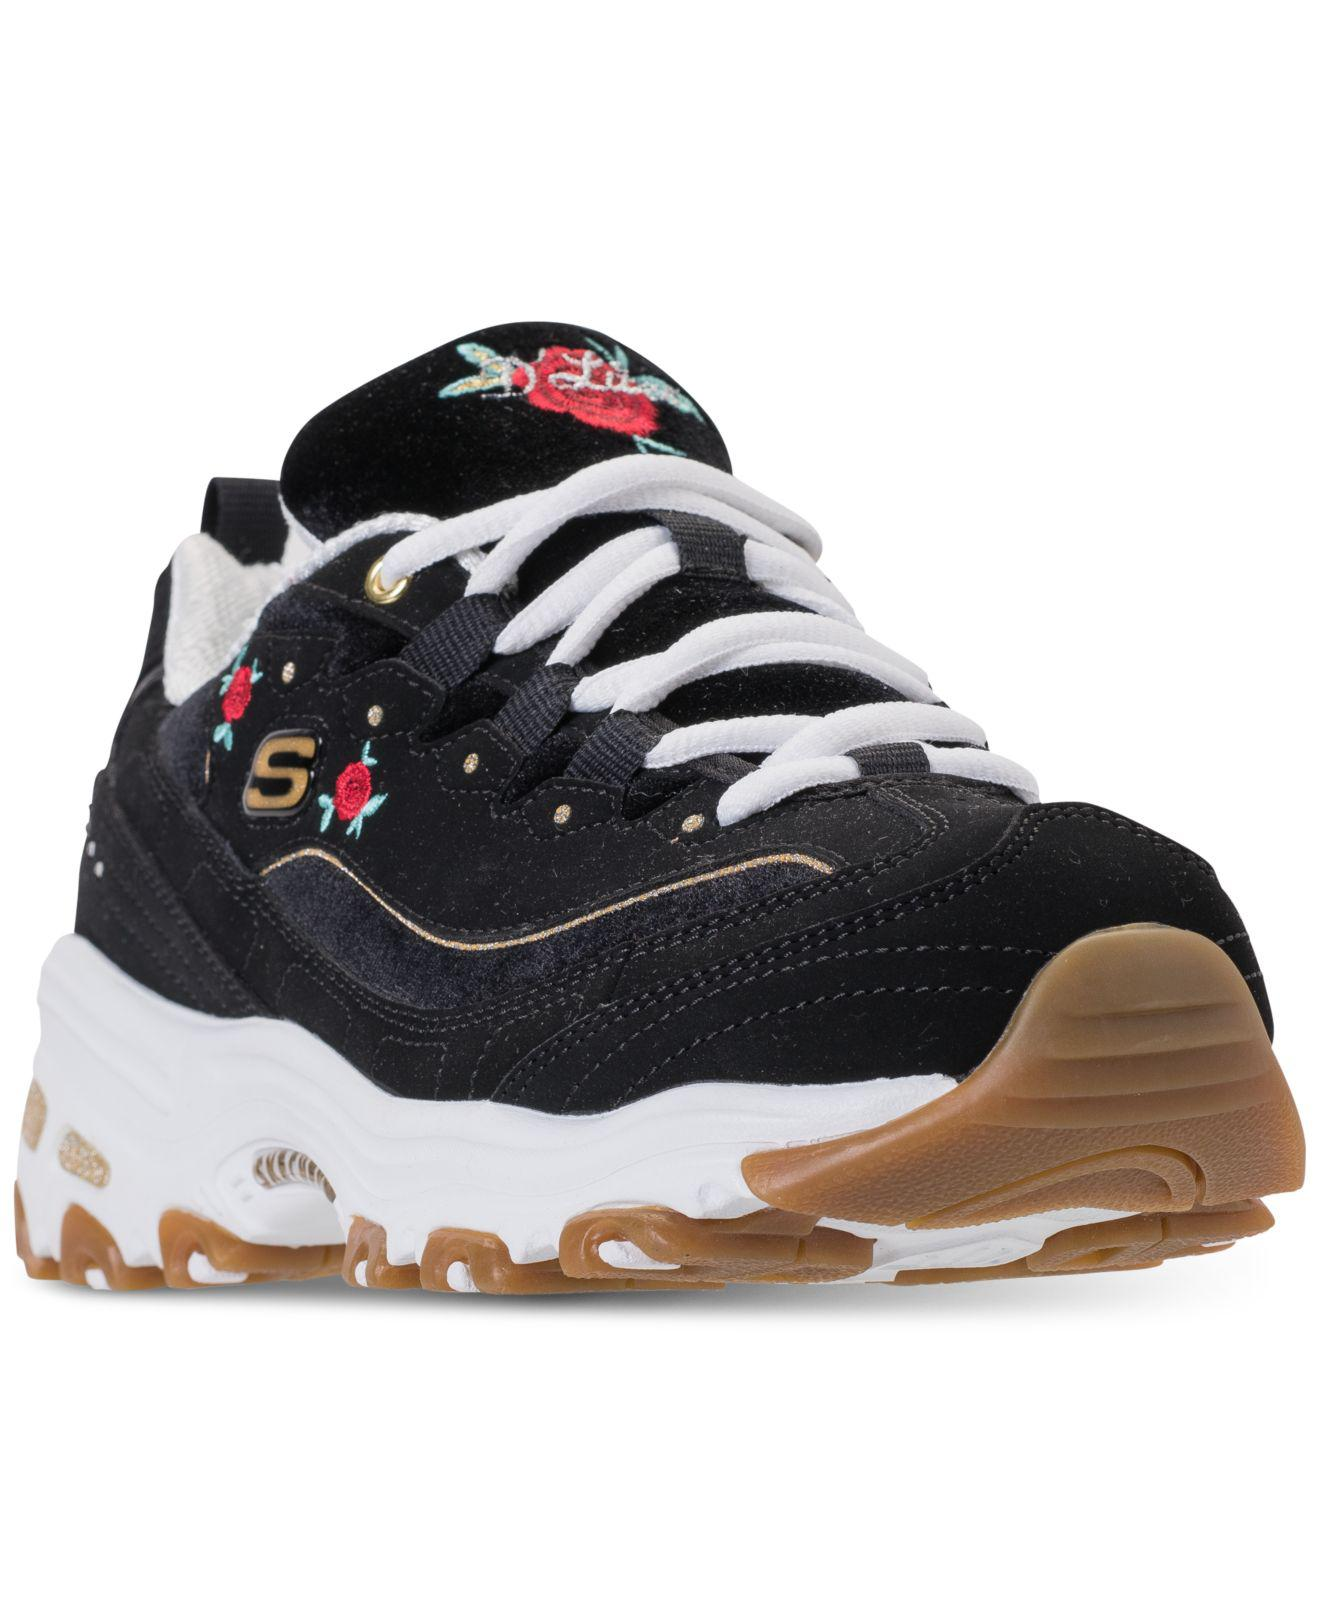 f211dc36a271 Lyst - Skechers D lite - Rose Blooms (black white) Women s Lace Up ...